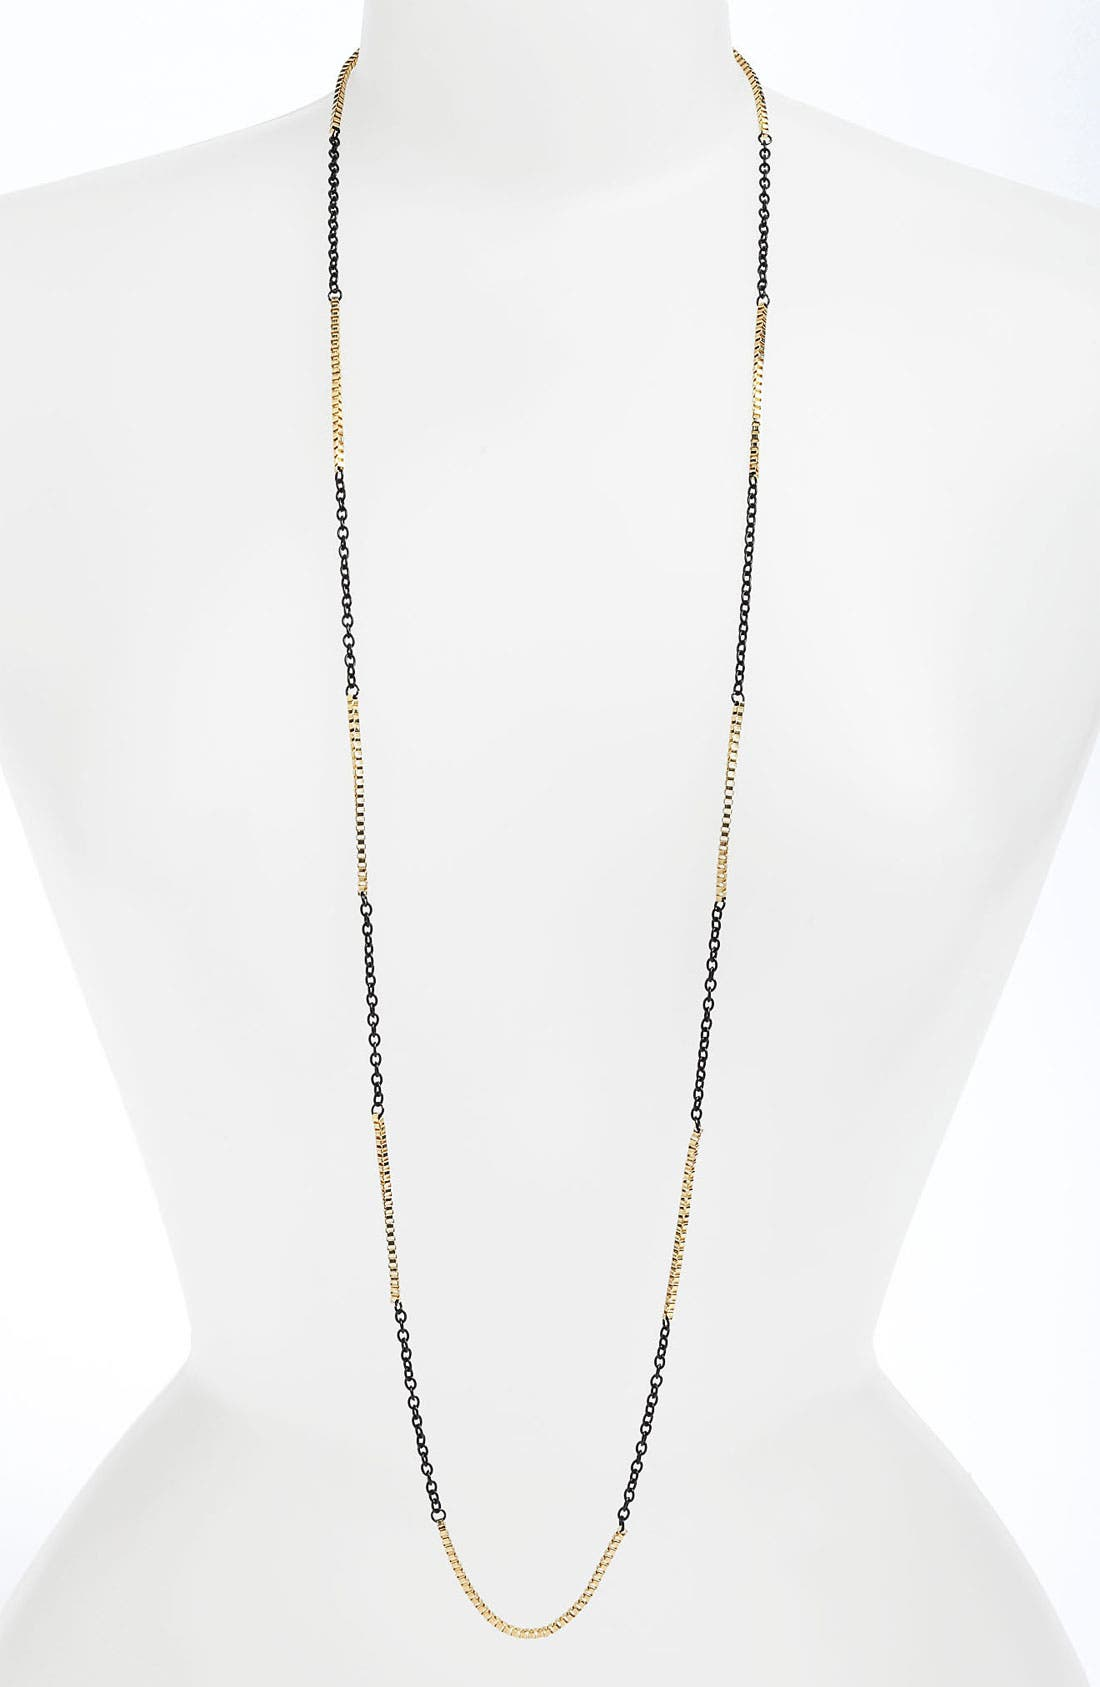 Alternate Image 1 Selected - Stephan & Co Mixed Chain Necklace